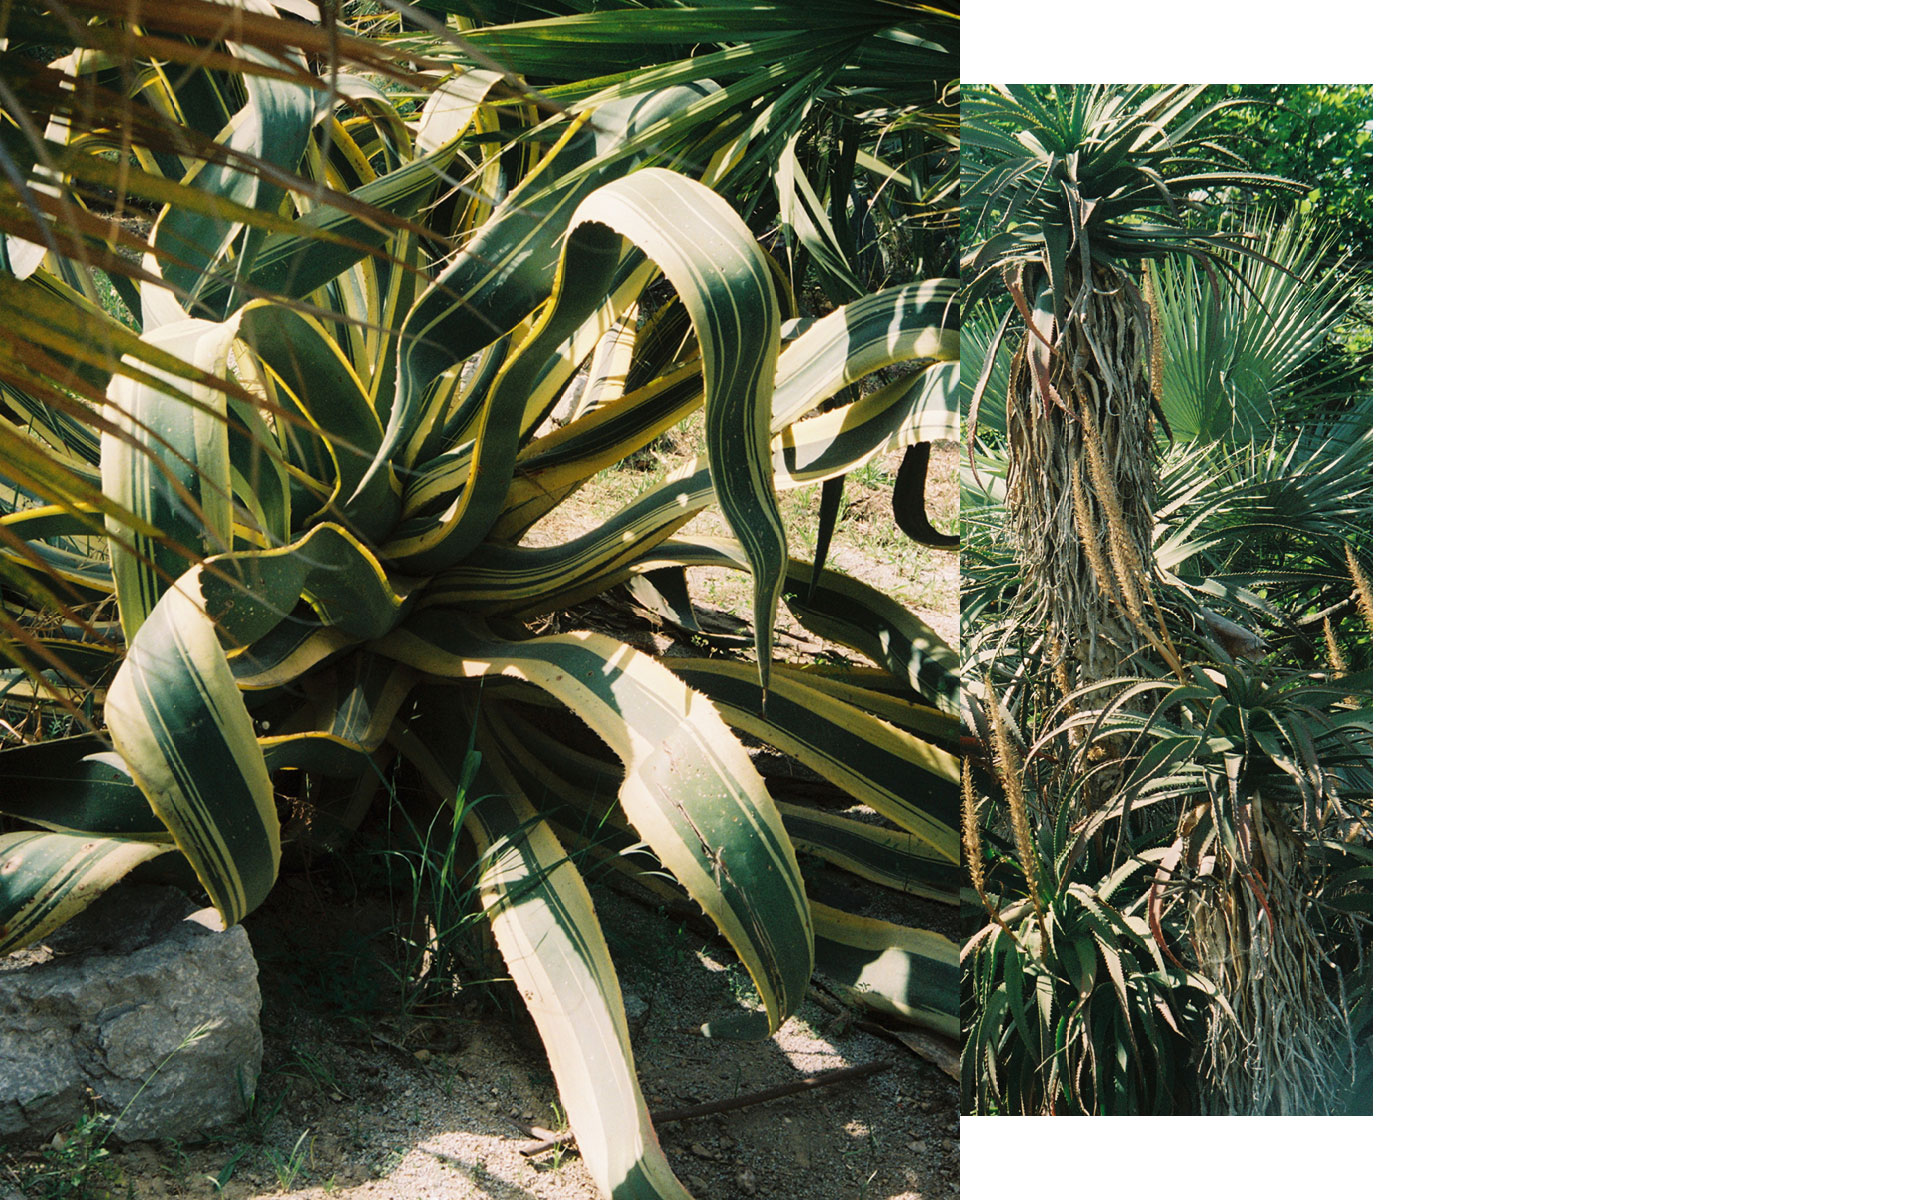 The-Aesthetic-Other-Plantage-10.jpg